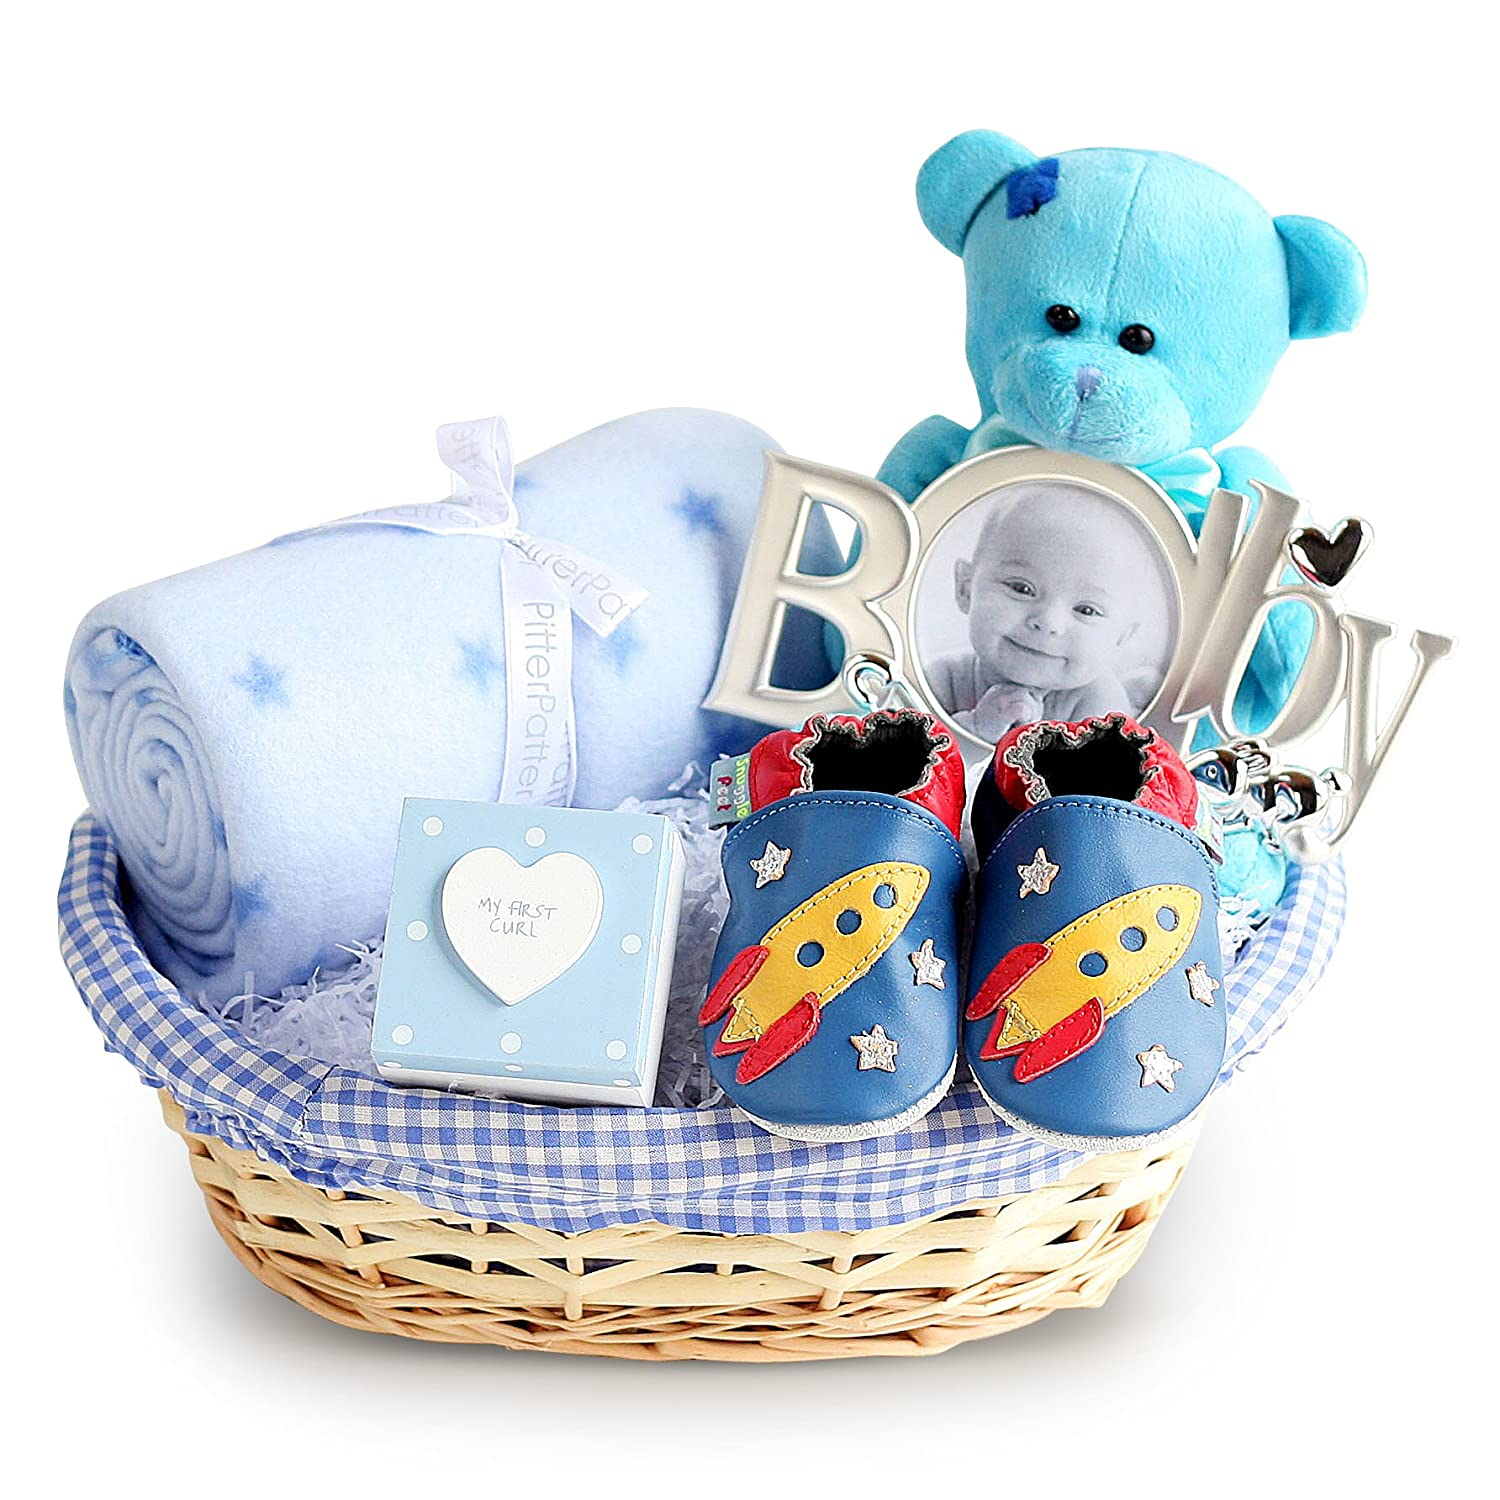 0f42c8ca5d47 Deluxe Boy New Baby Gift Basket, Newborn Baby Hamper, Baby Shower Ideas,  Christening Gifts, Maternity Presents: Amazon.co.uk: Baby